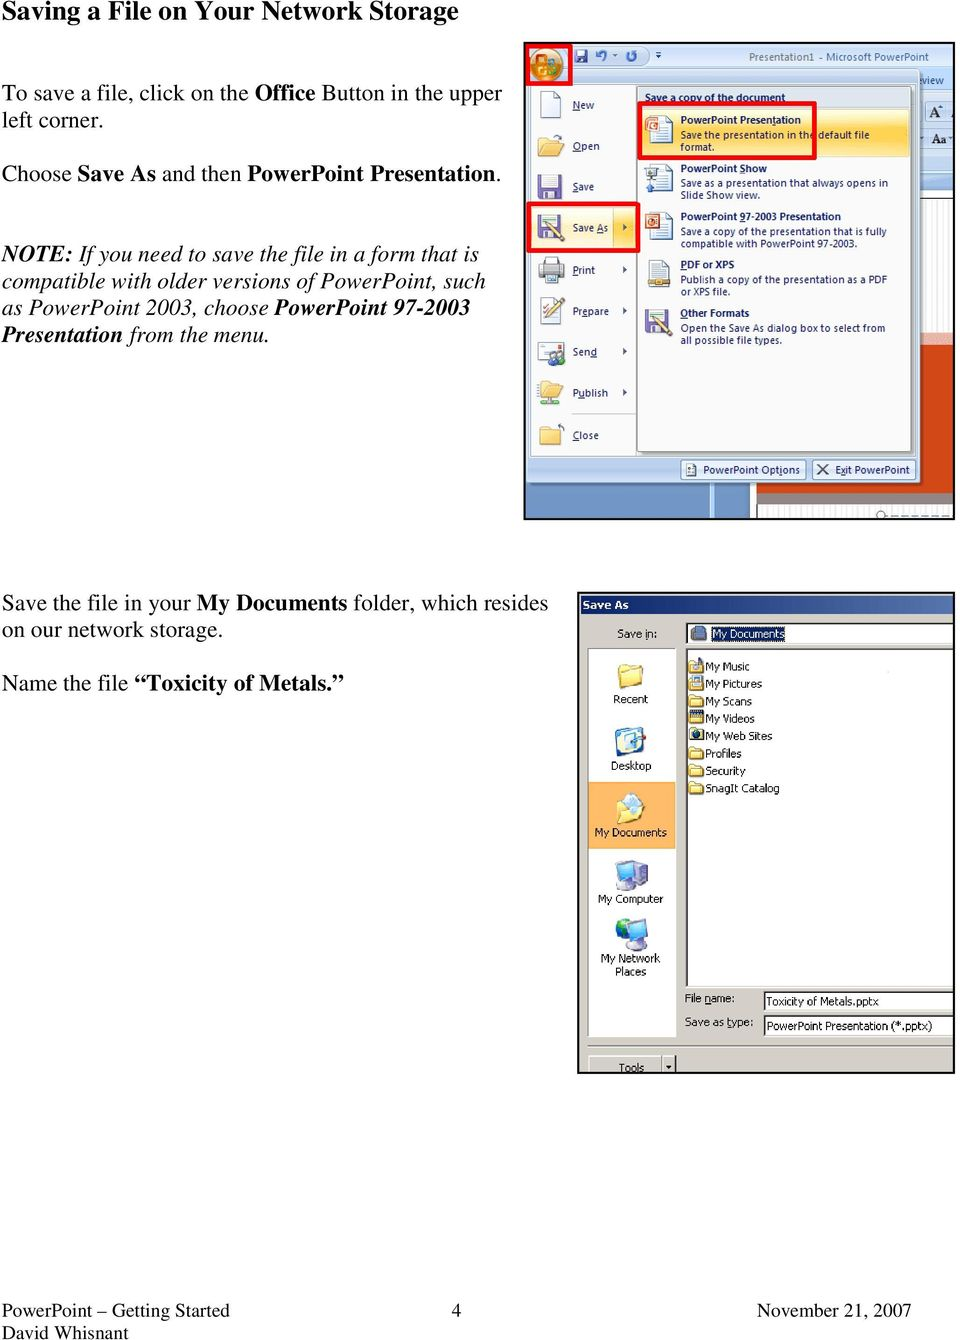 NOTE: If you need to save the file in a form that is compatible with older versions of PowerPoint, such as PowerPoint